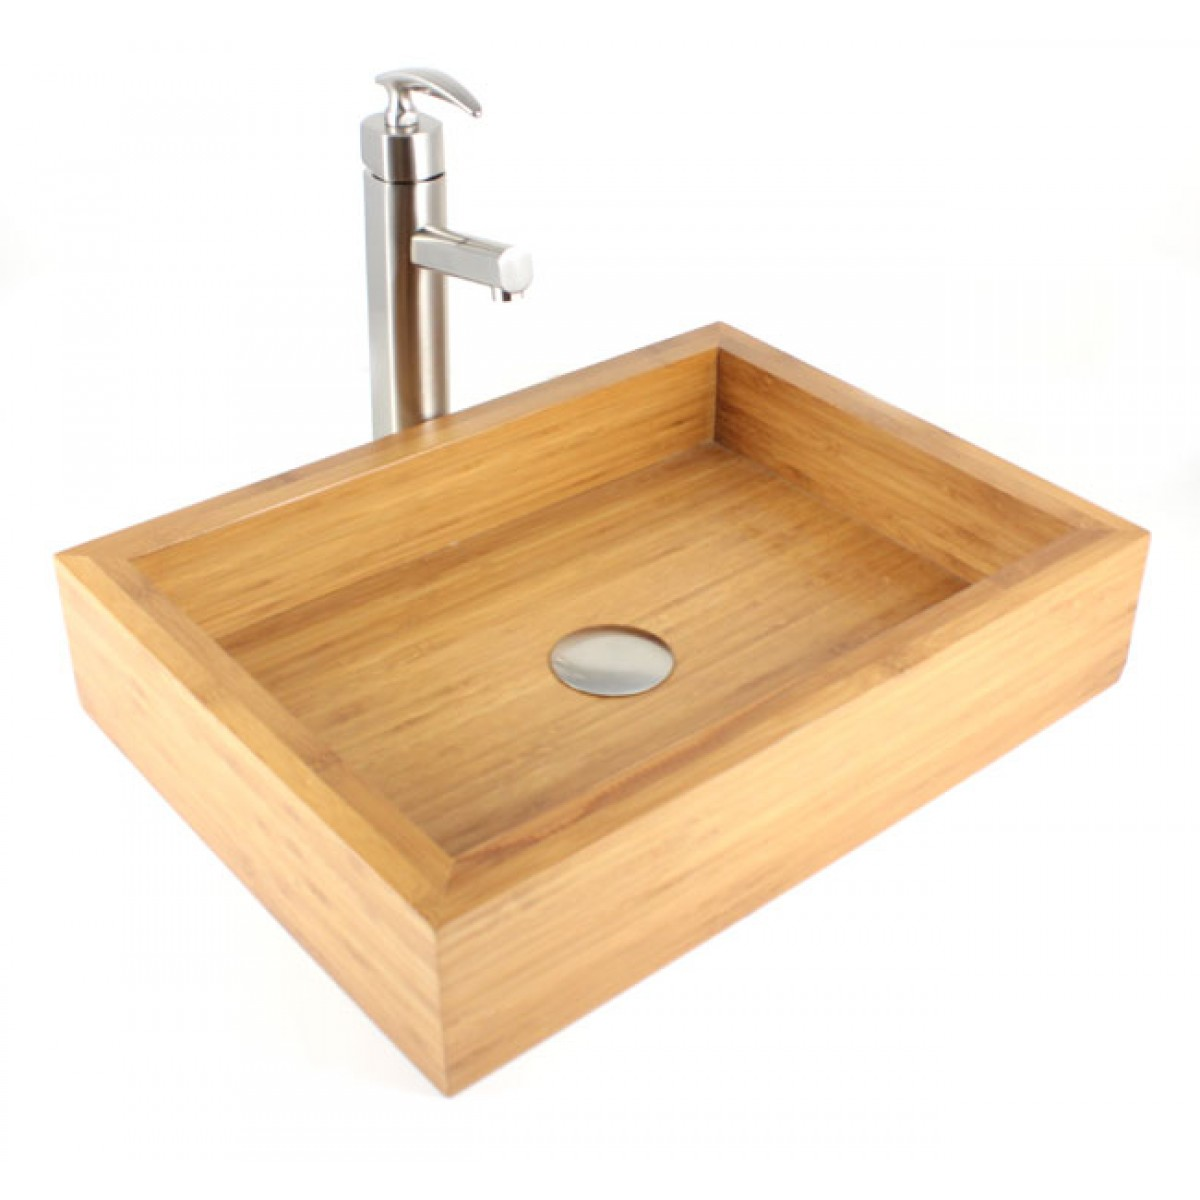 Irenic Bamboo Countertop Bathroom Lavatory Vessel Sink 18 7 8 X 14 4 1 Inch